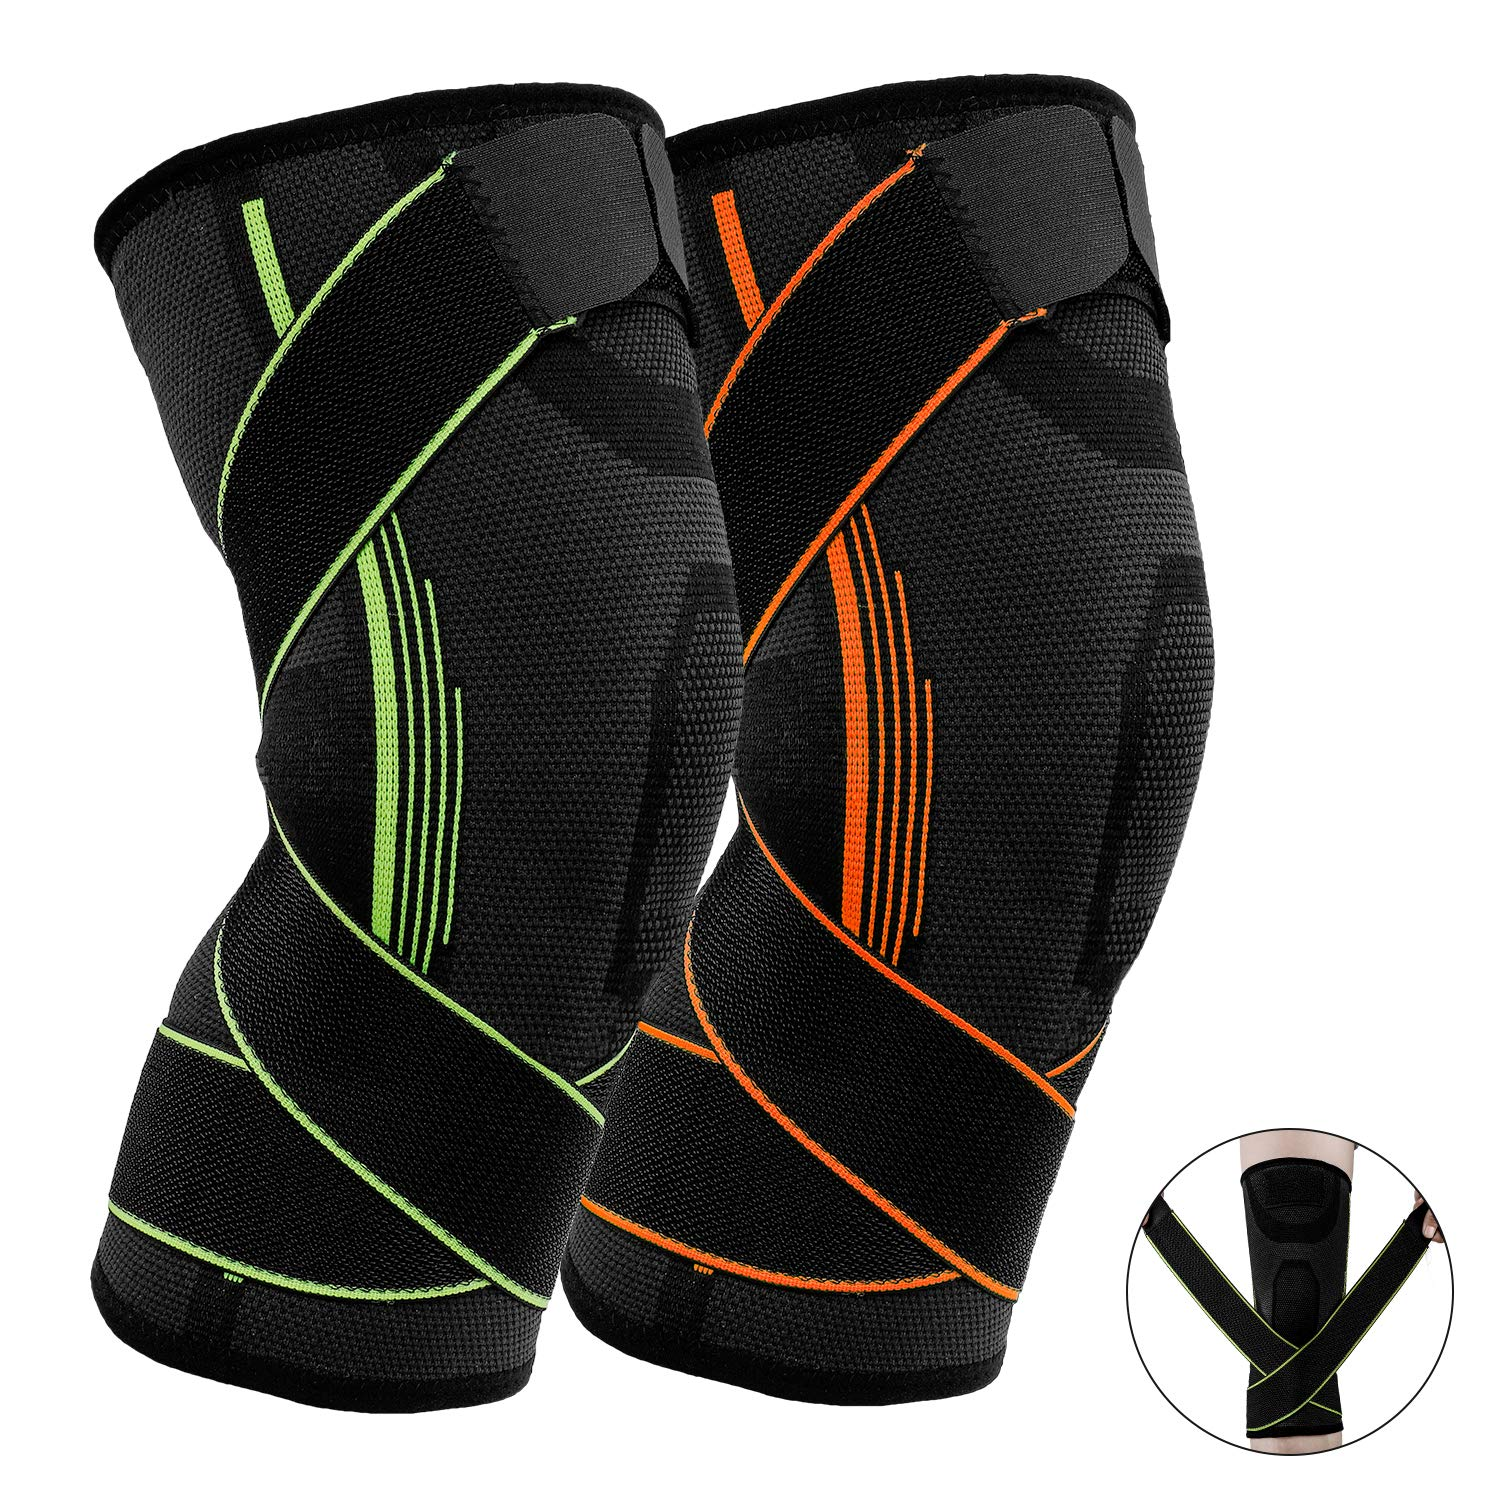 Fitness Atletiek Yoga Single Ply Breathable Knee Sleeves Compression And Support For Weightlifting Harmonics Co Jp